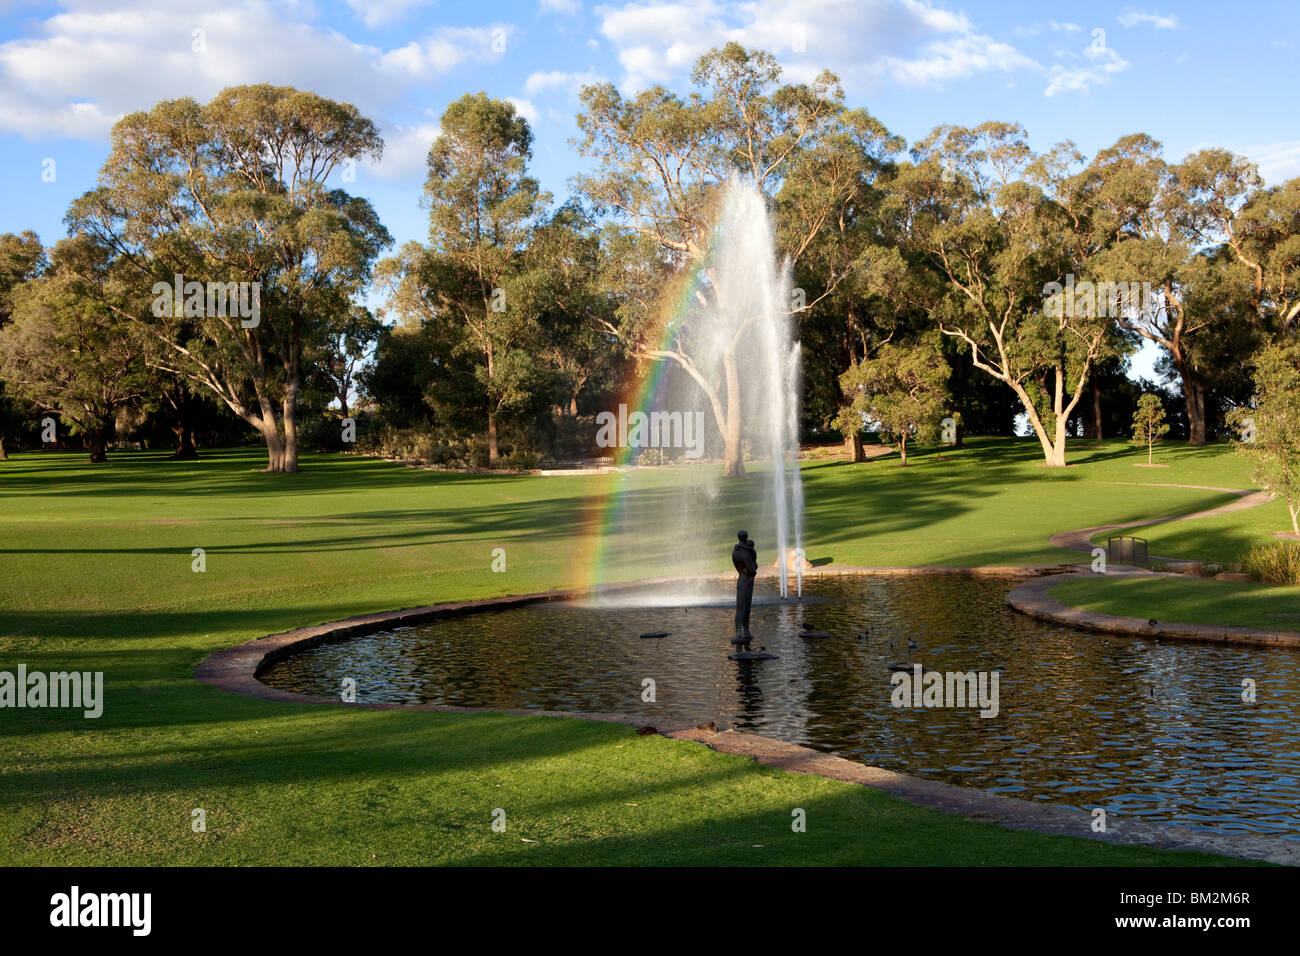 Fountain and landscaped lawns in Kings Park, Perth, Western Australia. A rainbow appears in the fountain's spray. - Stock Image